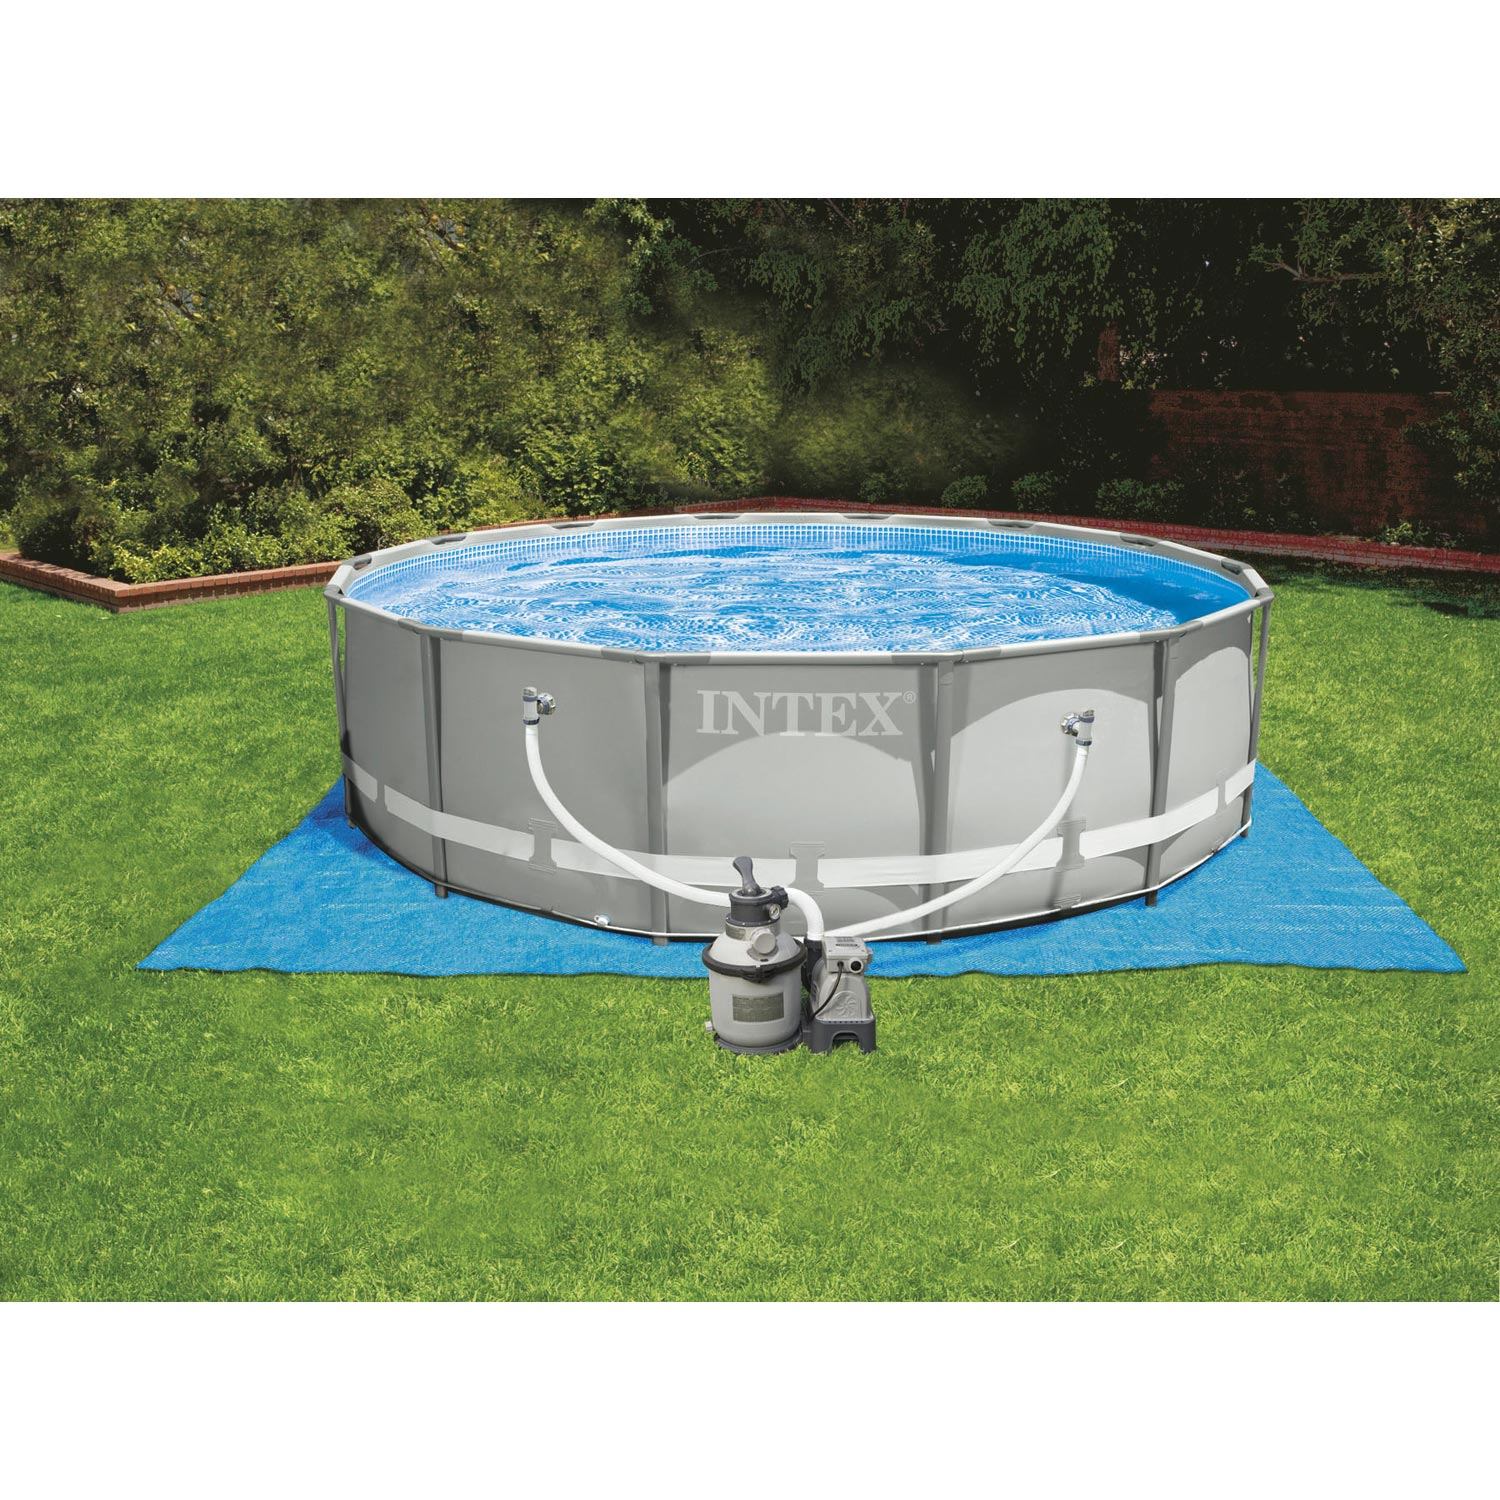 Piscine hors sol autoportante tubulaire ultra frame intex for Piscine hors sol 7 x 4